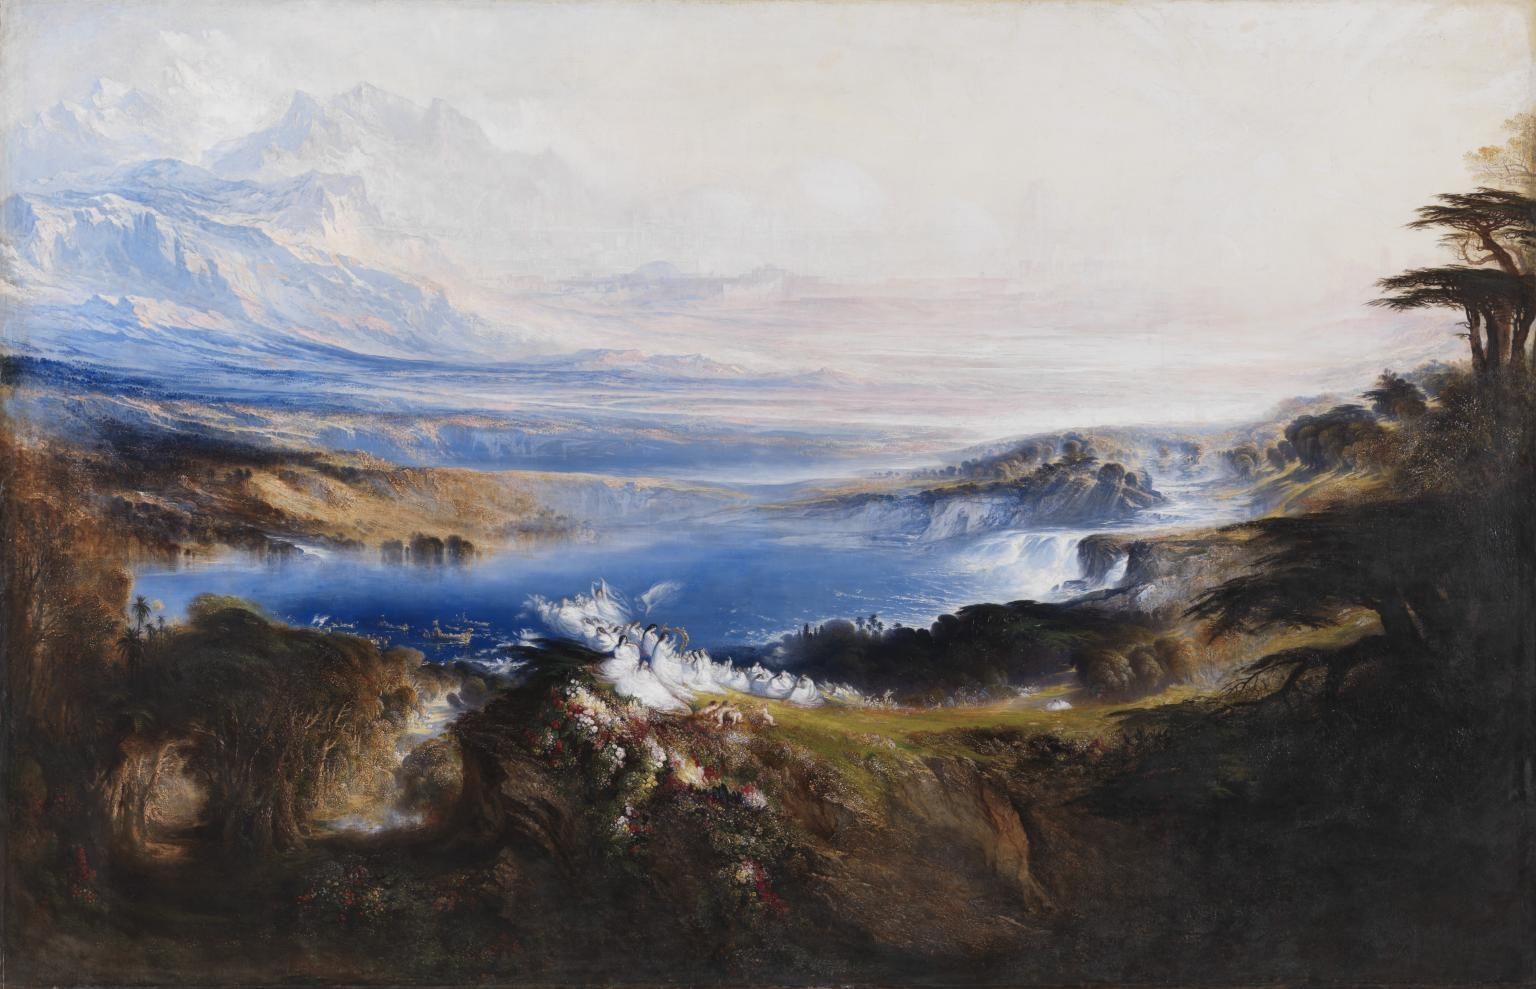 The Plains of Heaven 1851-3 John Martin 1789-1854 Bequeathed by Charlotte Frank in memory of her husband Robert Frank 1974 http://www.tate.org.uk/art/work/T01928